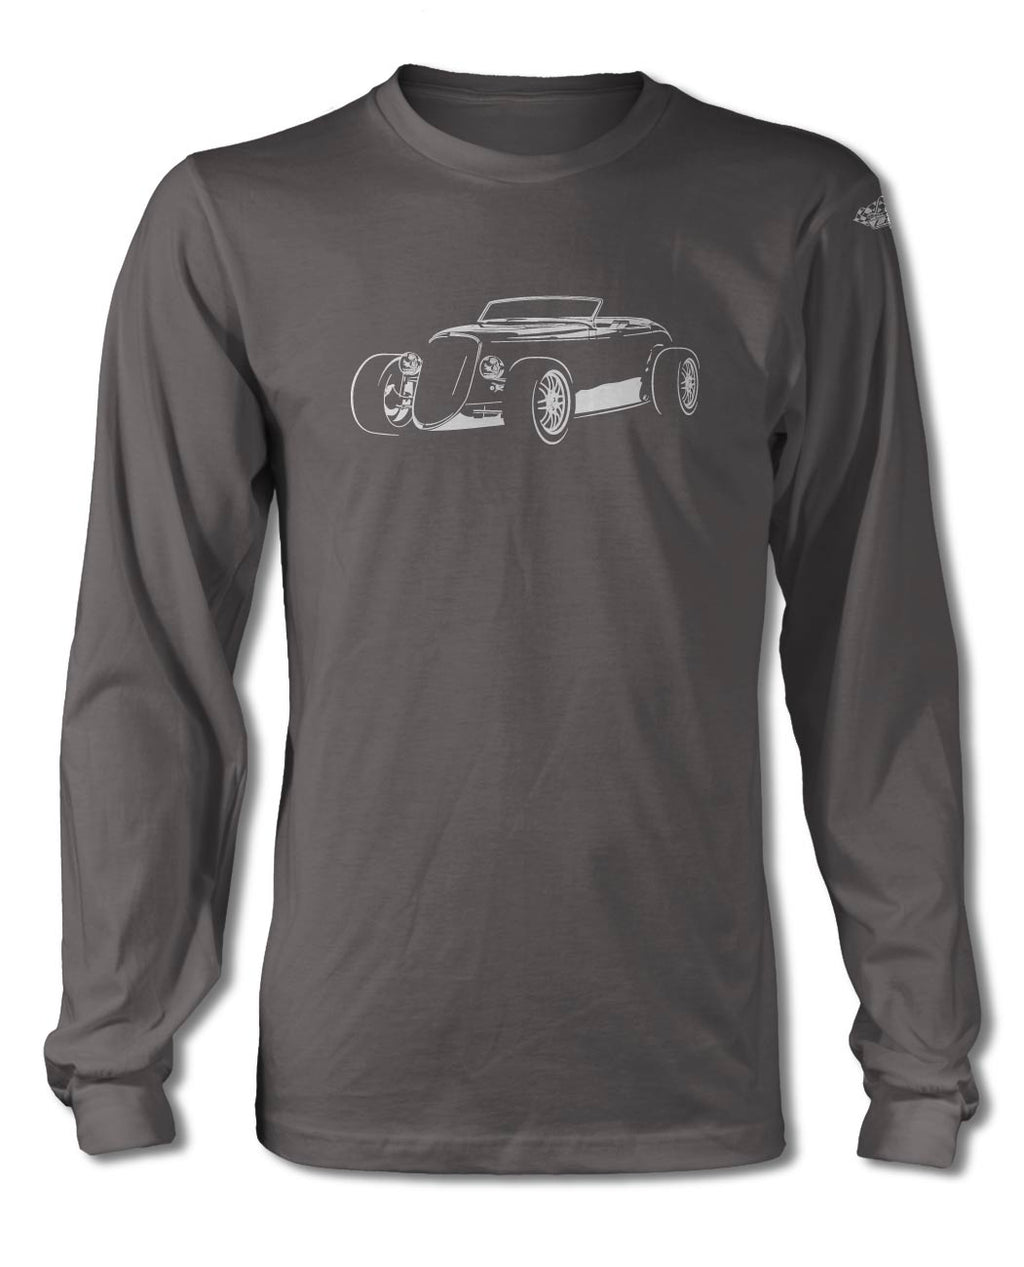 1934 Ford Coupe Hi Boy 3/4 T-Shirt - Long Sleeves - Spotlights